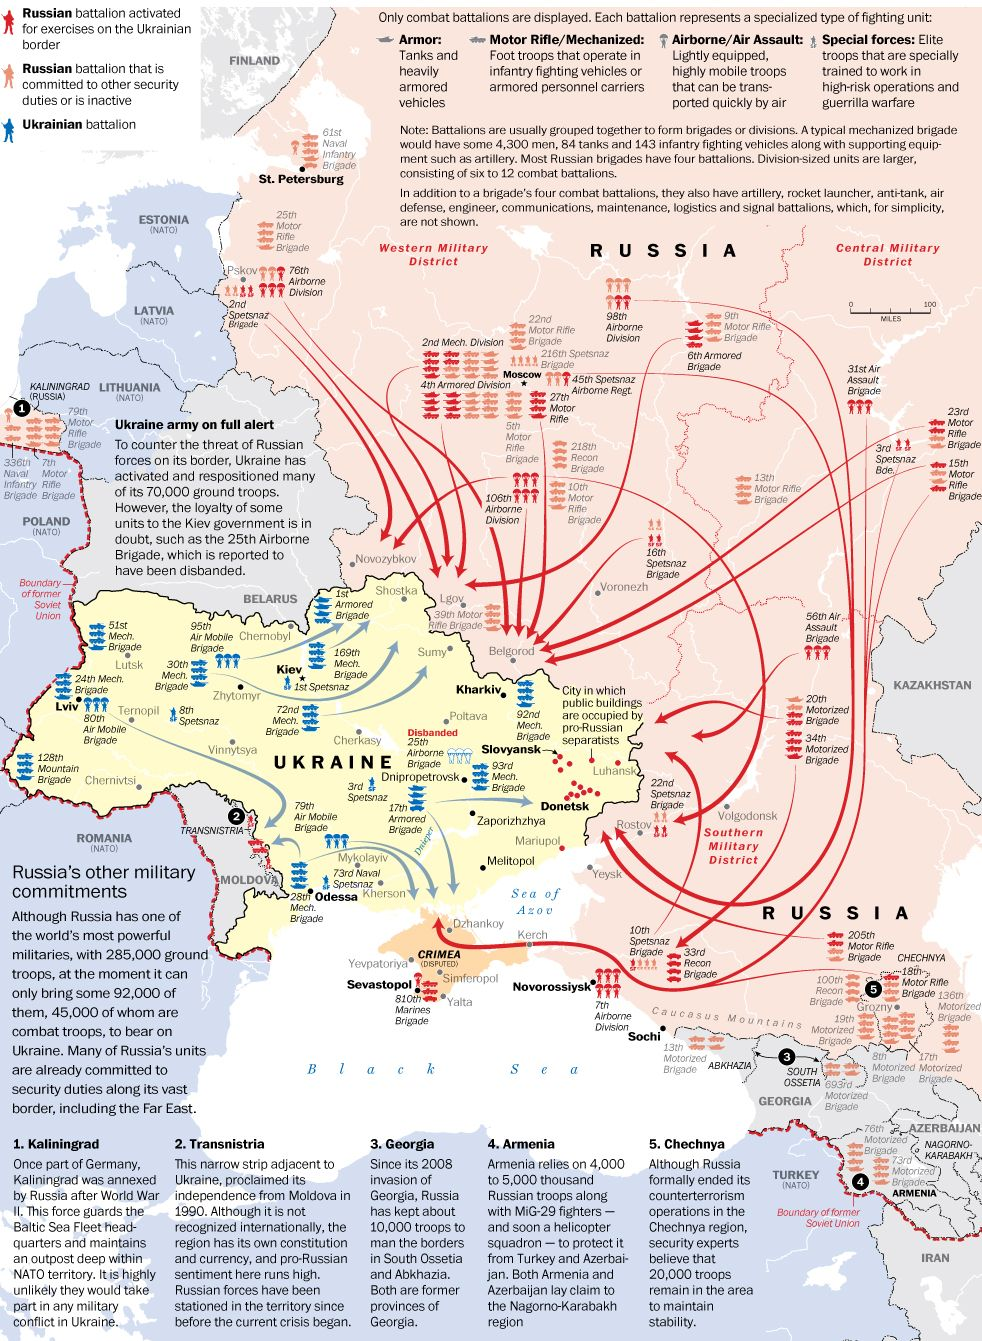 Map Of Russian Troop Movements Around Ukraine Maps Pinterest - Us military bases in middle east map